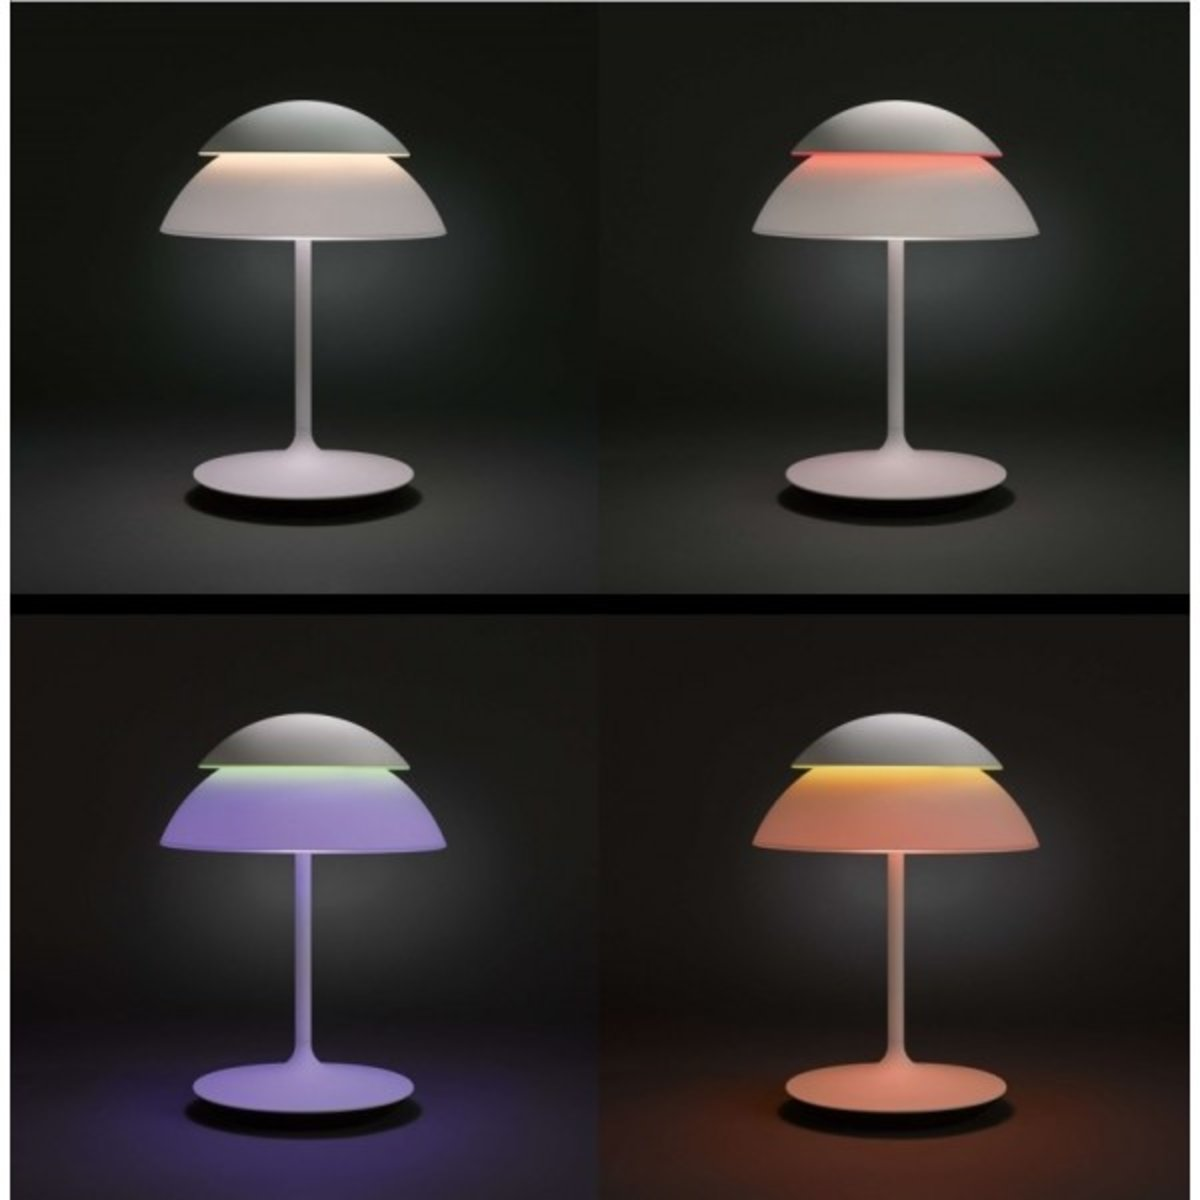 71202 Hue Color Beyond LED Table Lamp 2year warranty (行貨)